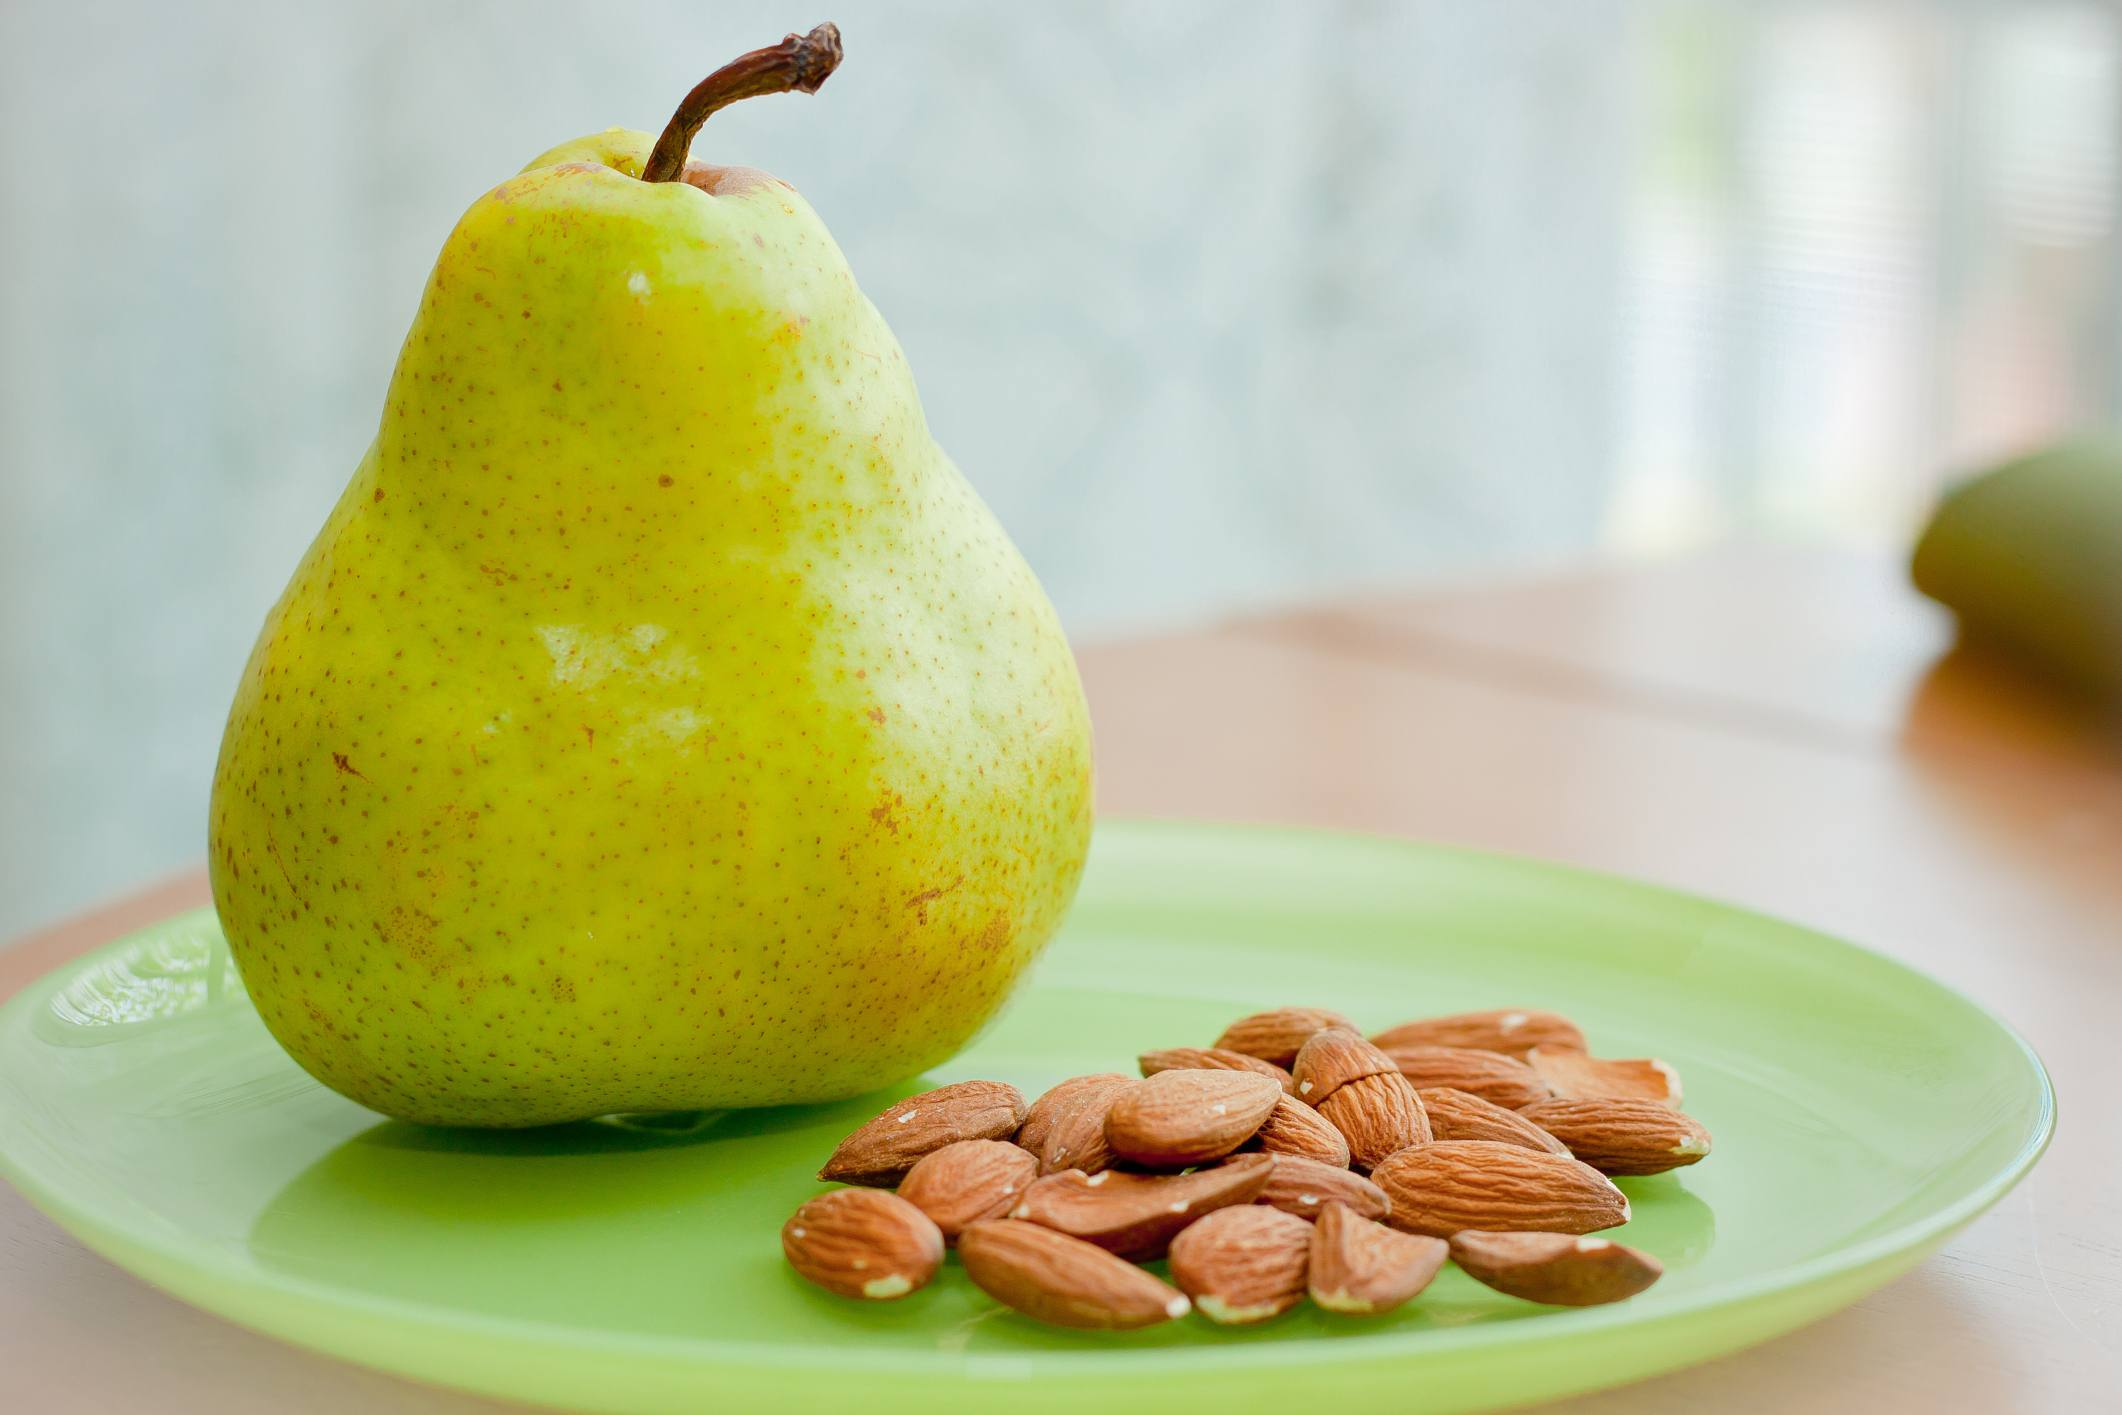 A pear and almonds are great for a work day snack.